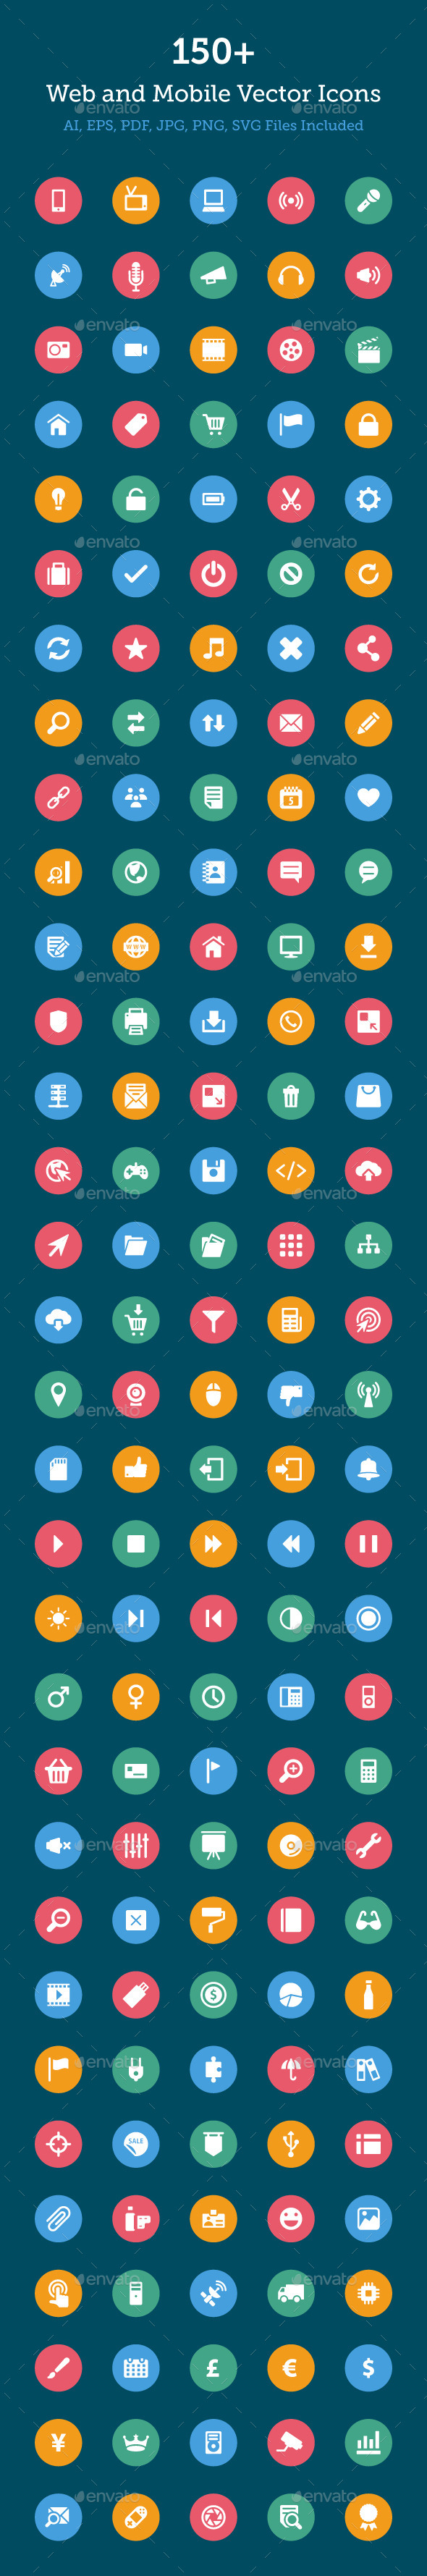 GraphicRiver 150& Web and Mobile Vector Icons 10419104